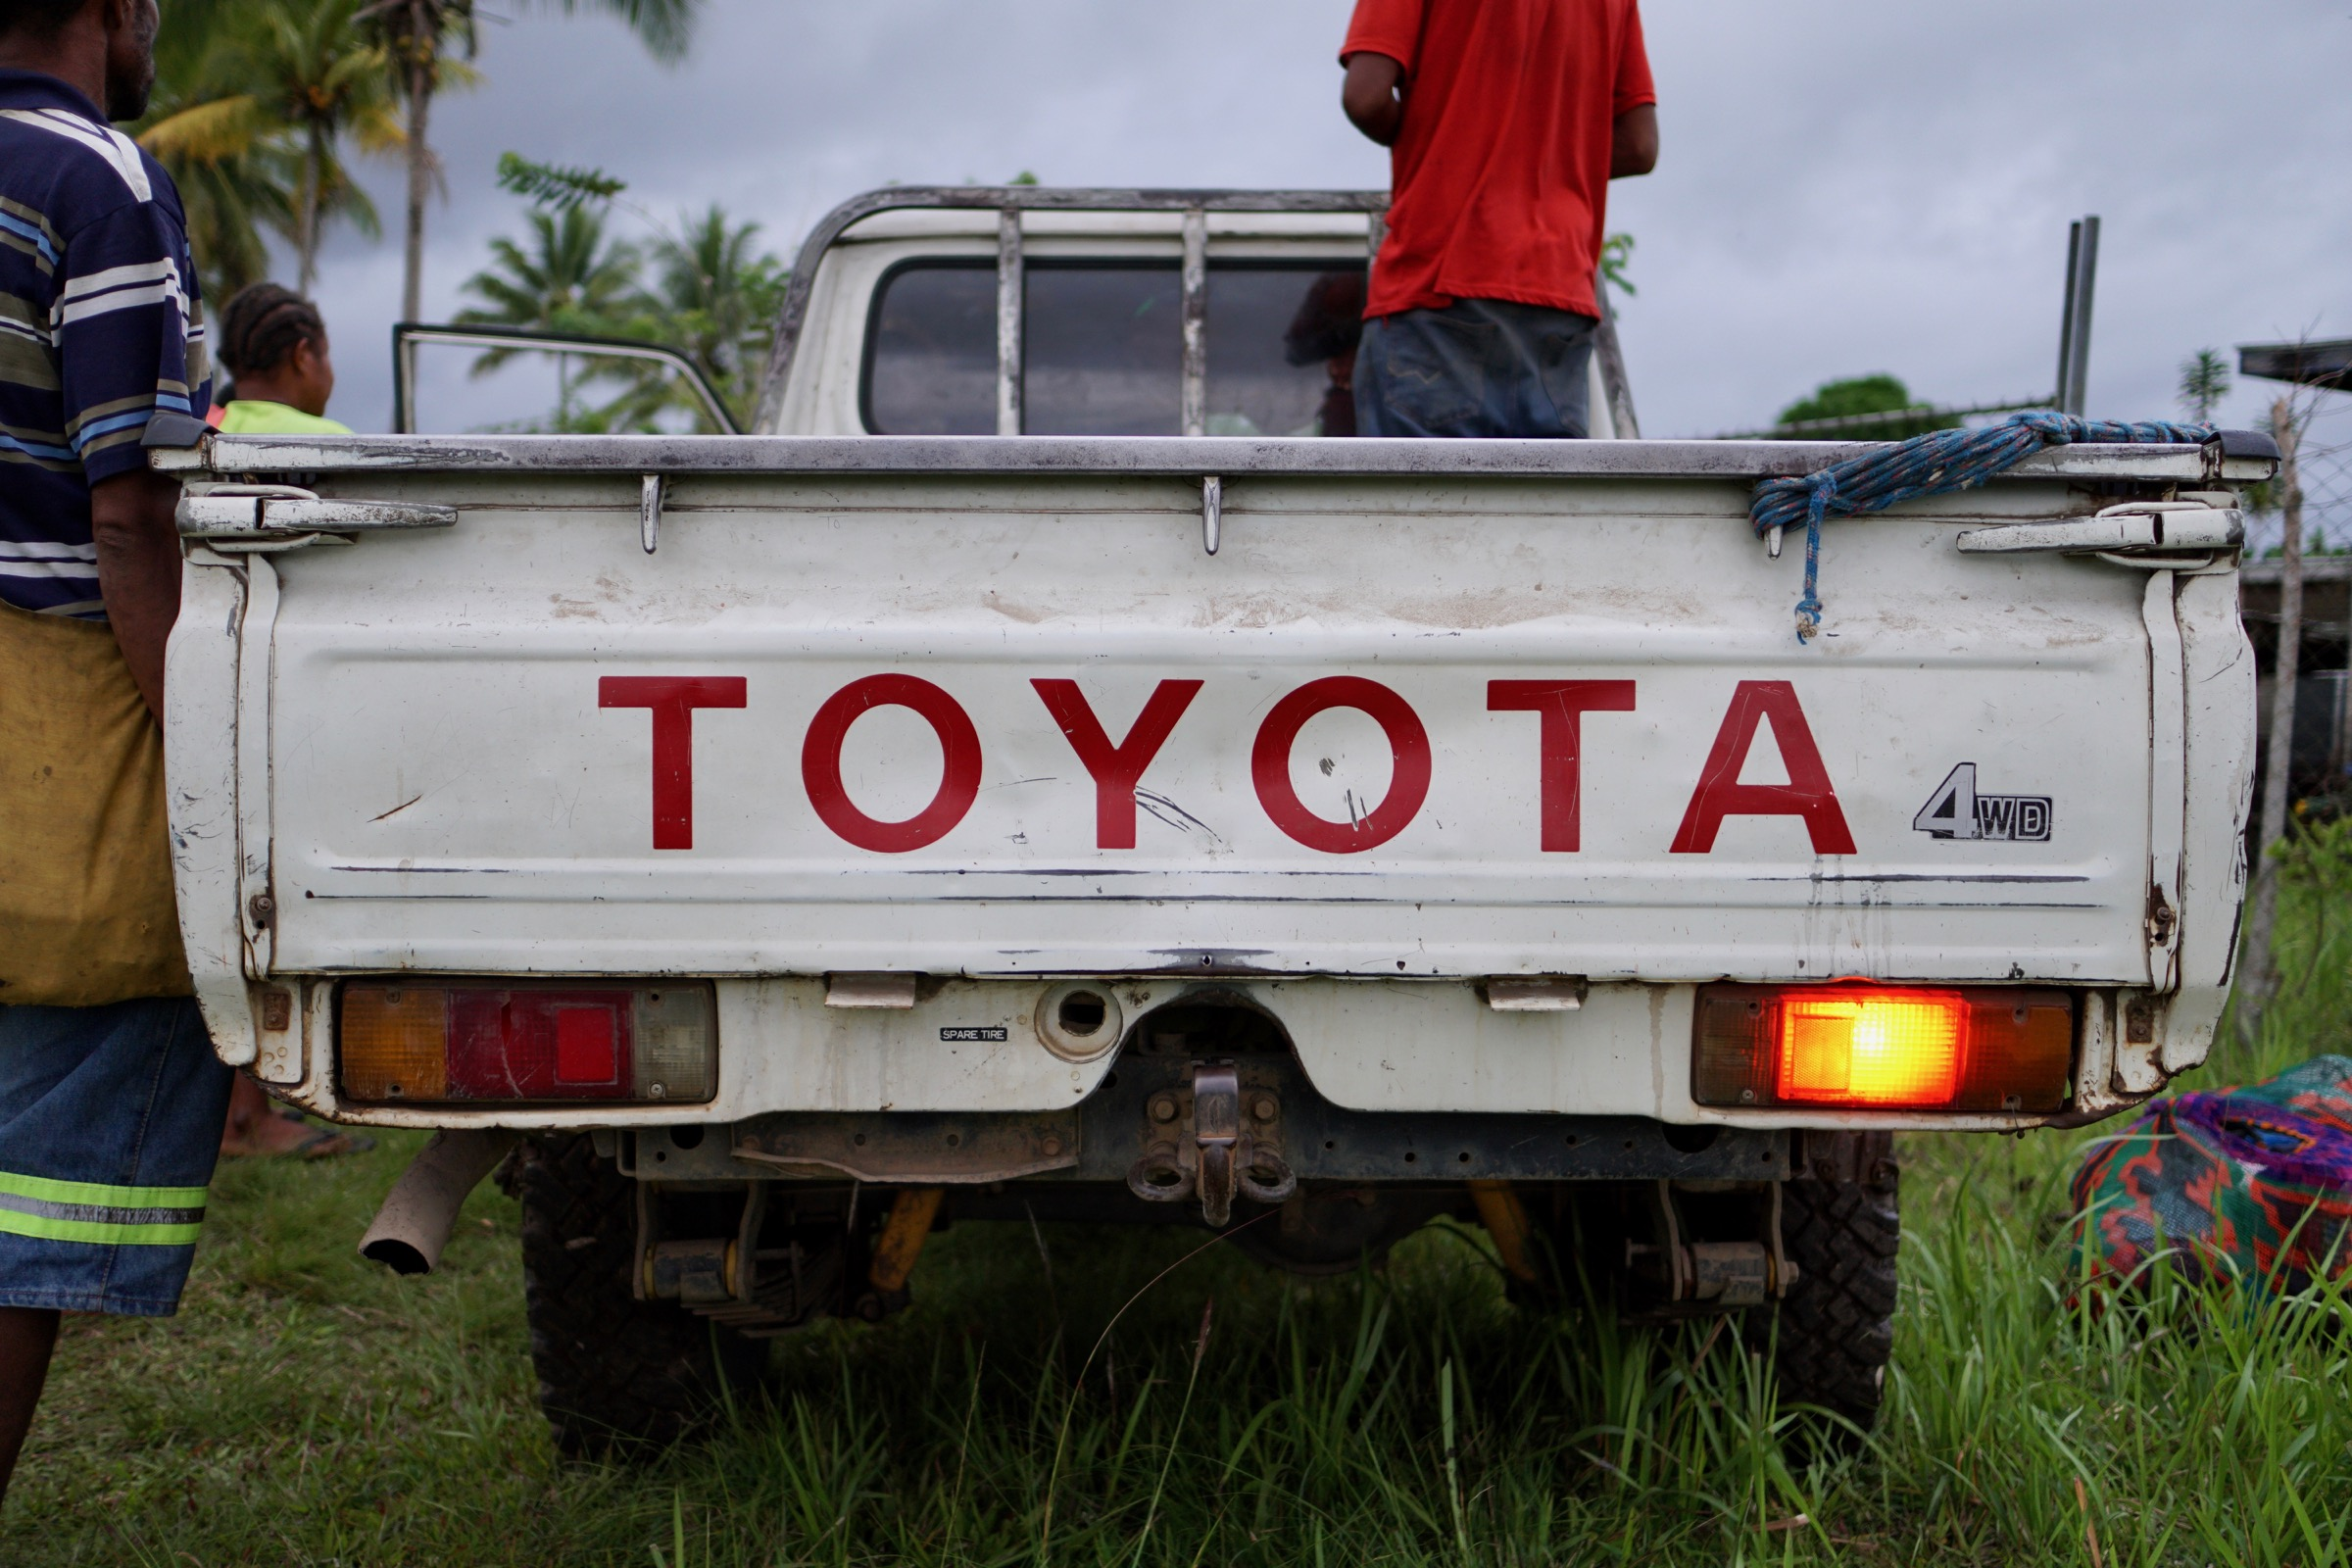 This Toyota Land Cruiser provides the only form of public transportation onto and off of the Managalas Plateau. Photograph by Ethan Linck